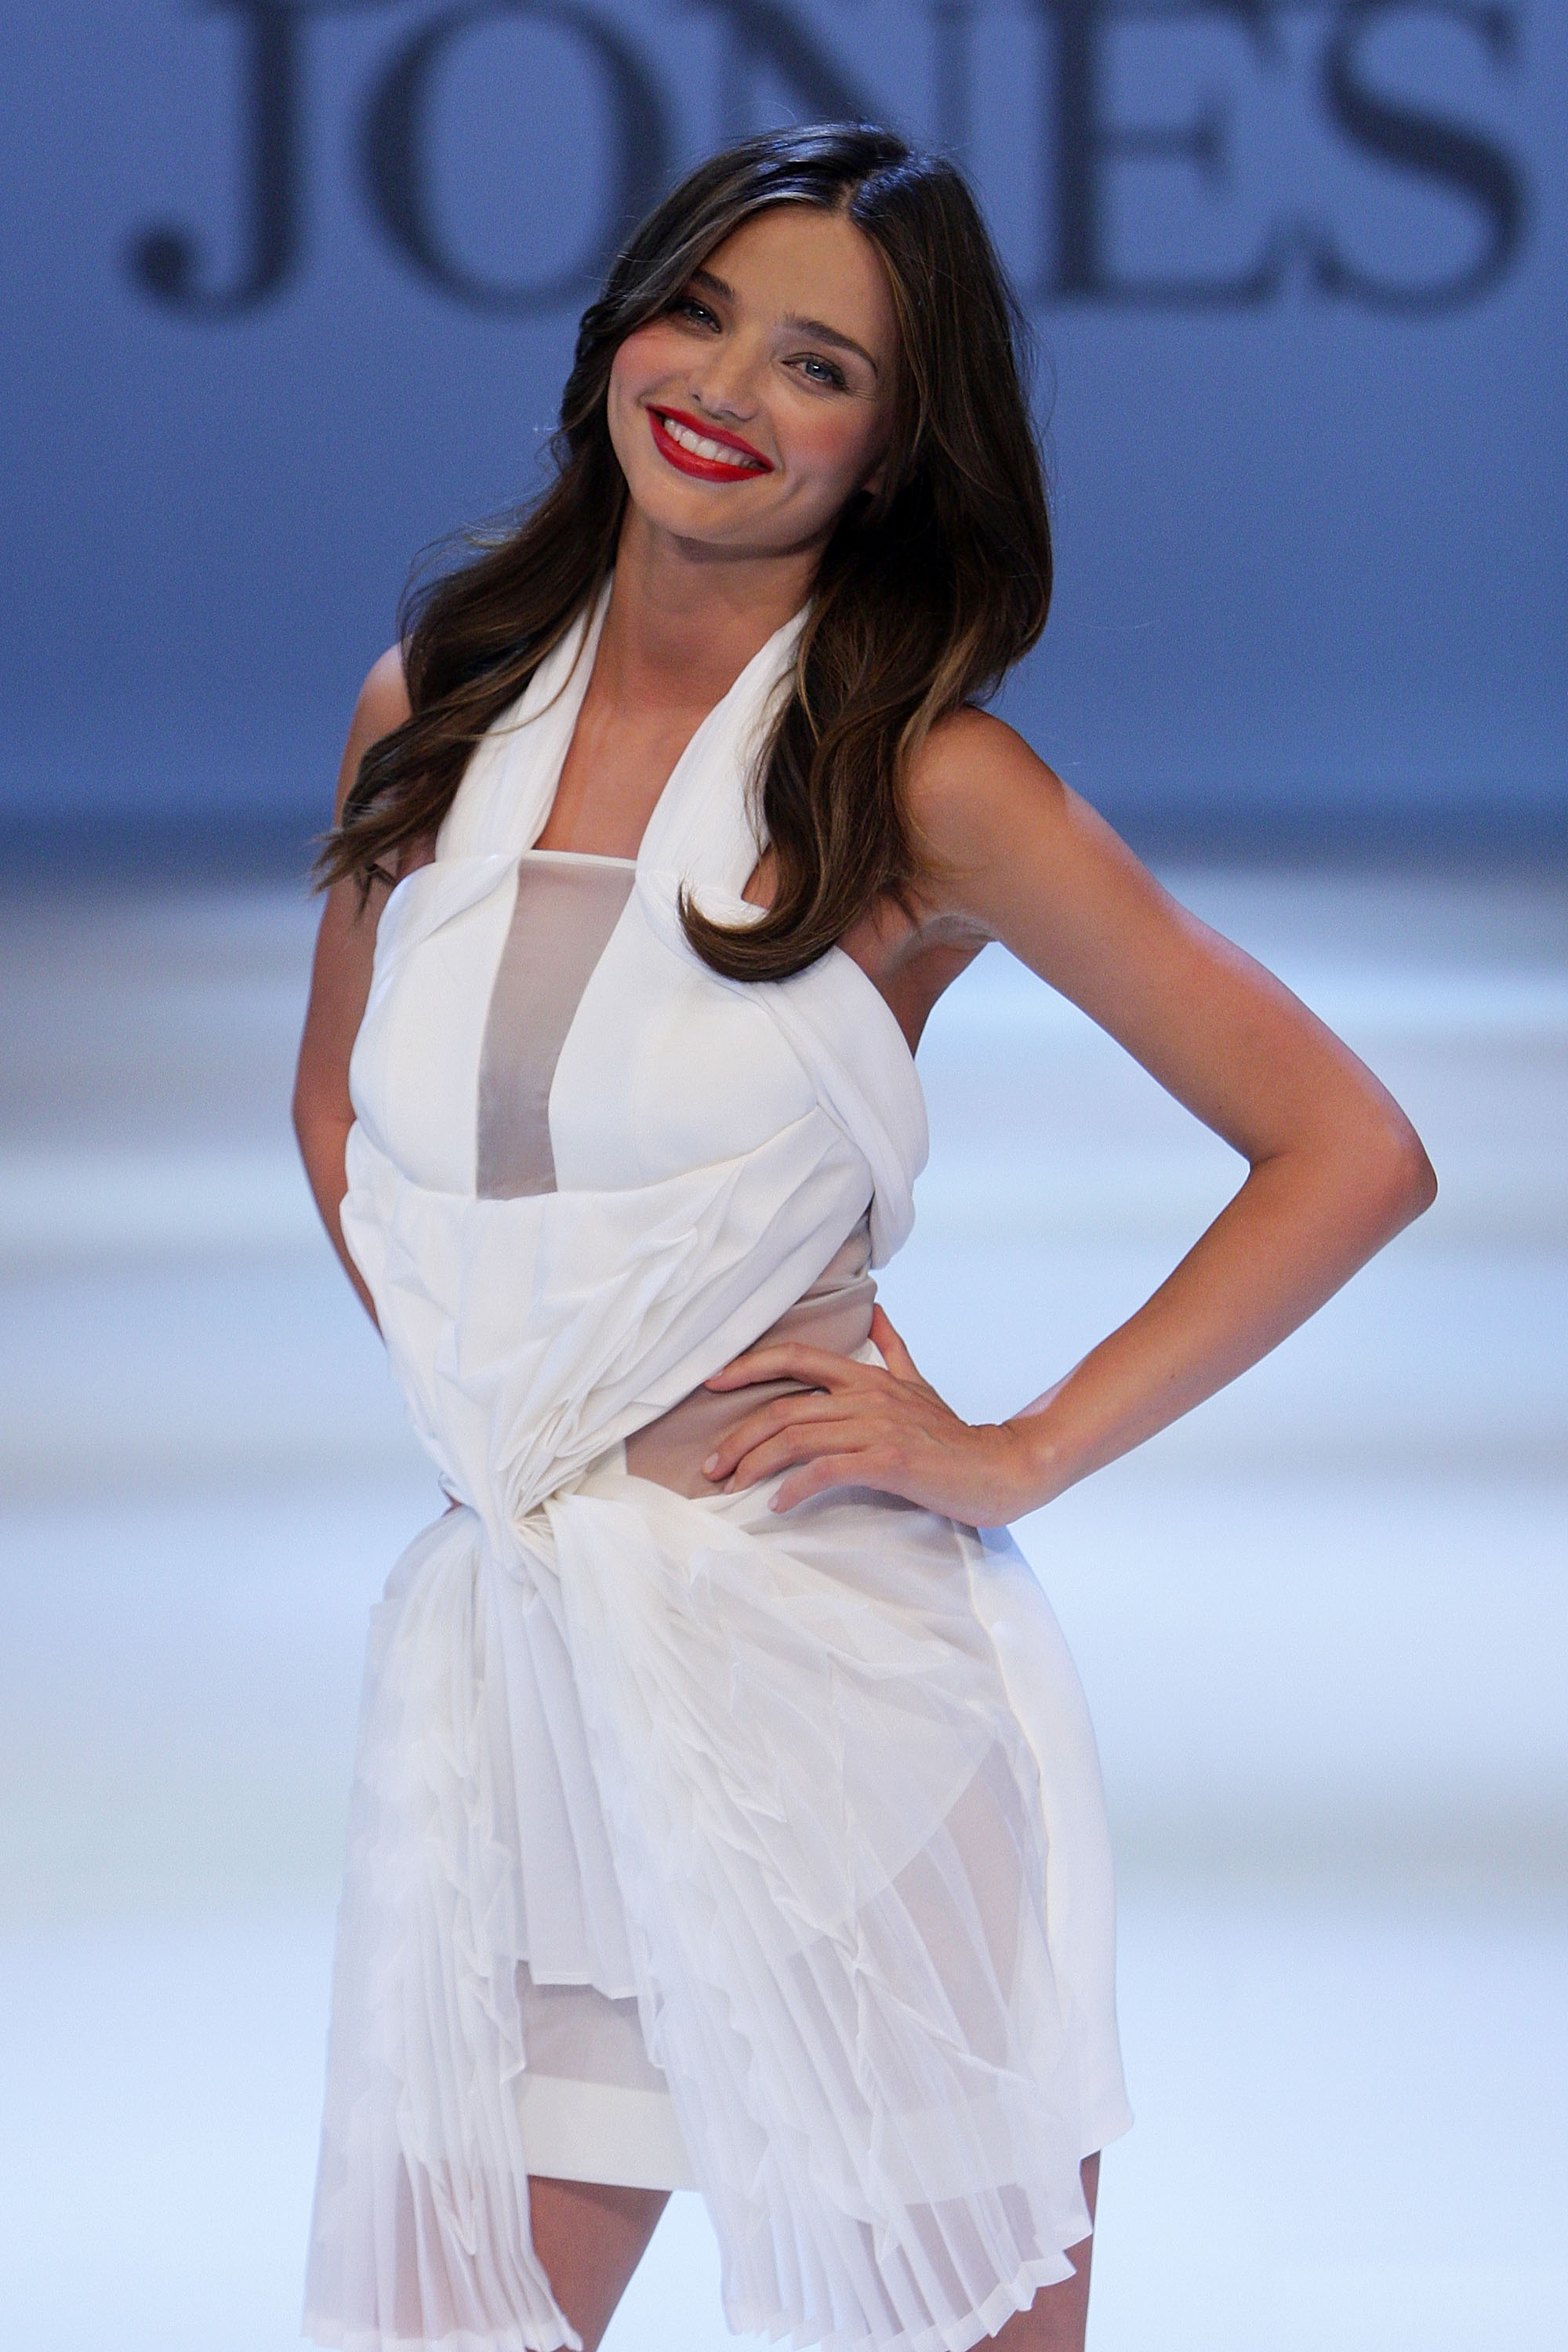 Miranda Kerr smiles in white.